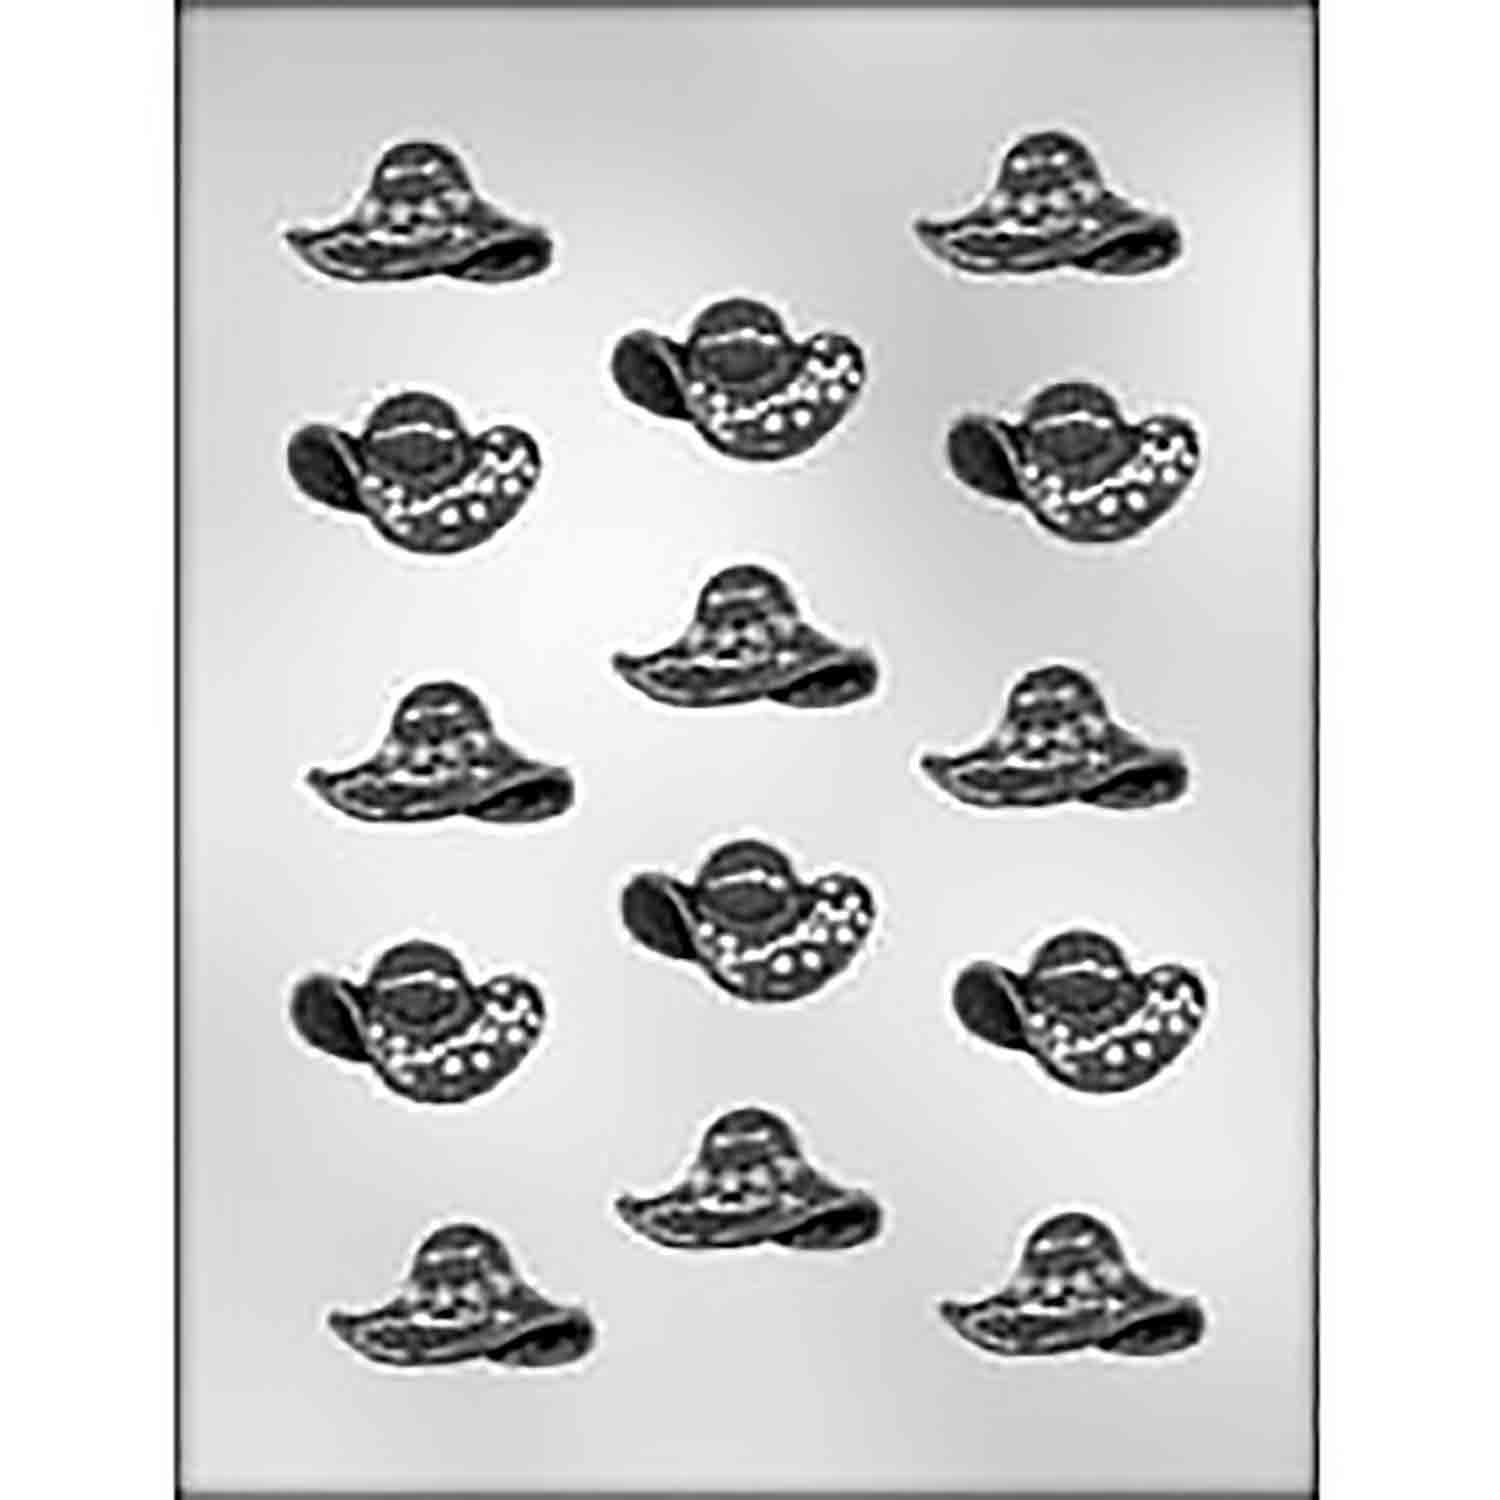 Hat Assortment Chocolate Candy Mold